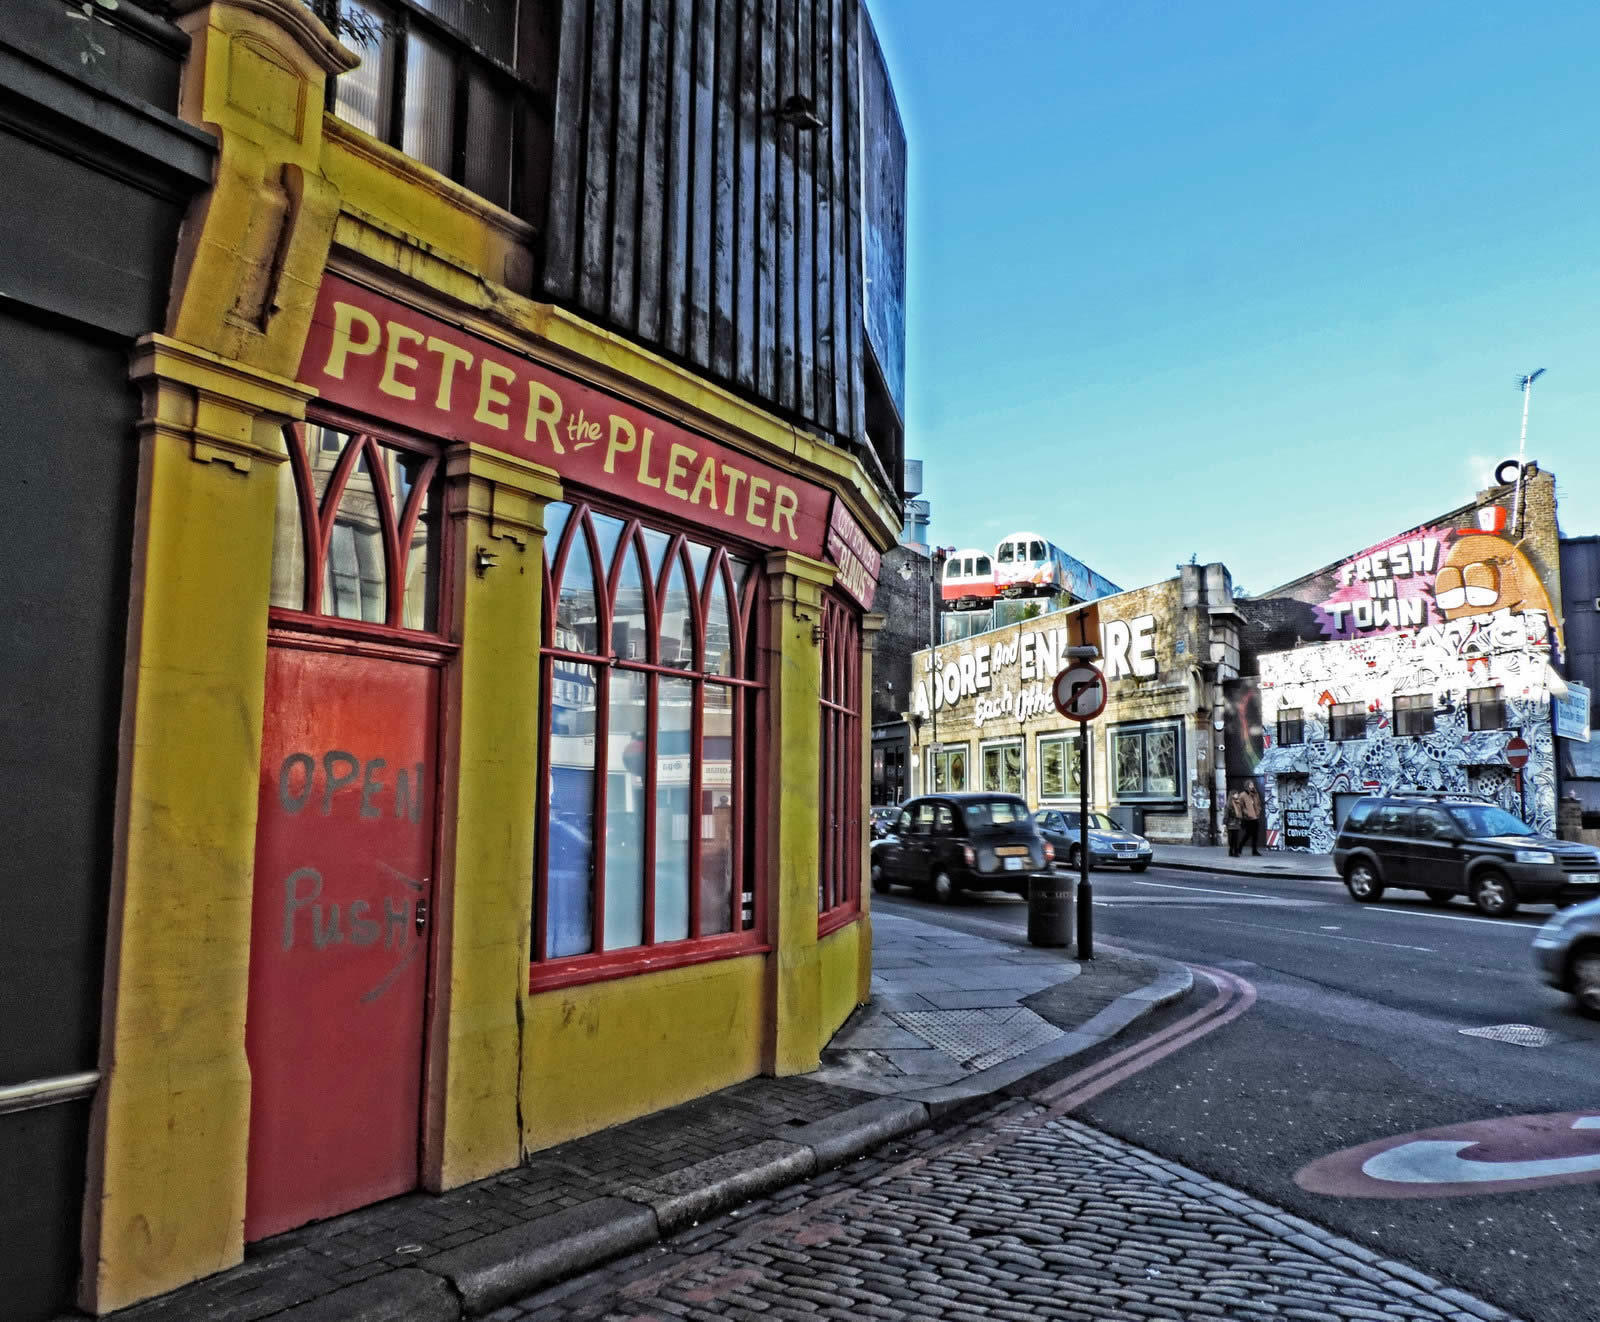 shoreditch-quartier-hype-architecture-eclectique-street-art-galeries-antiquites-friperies